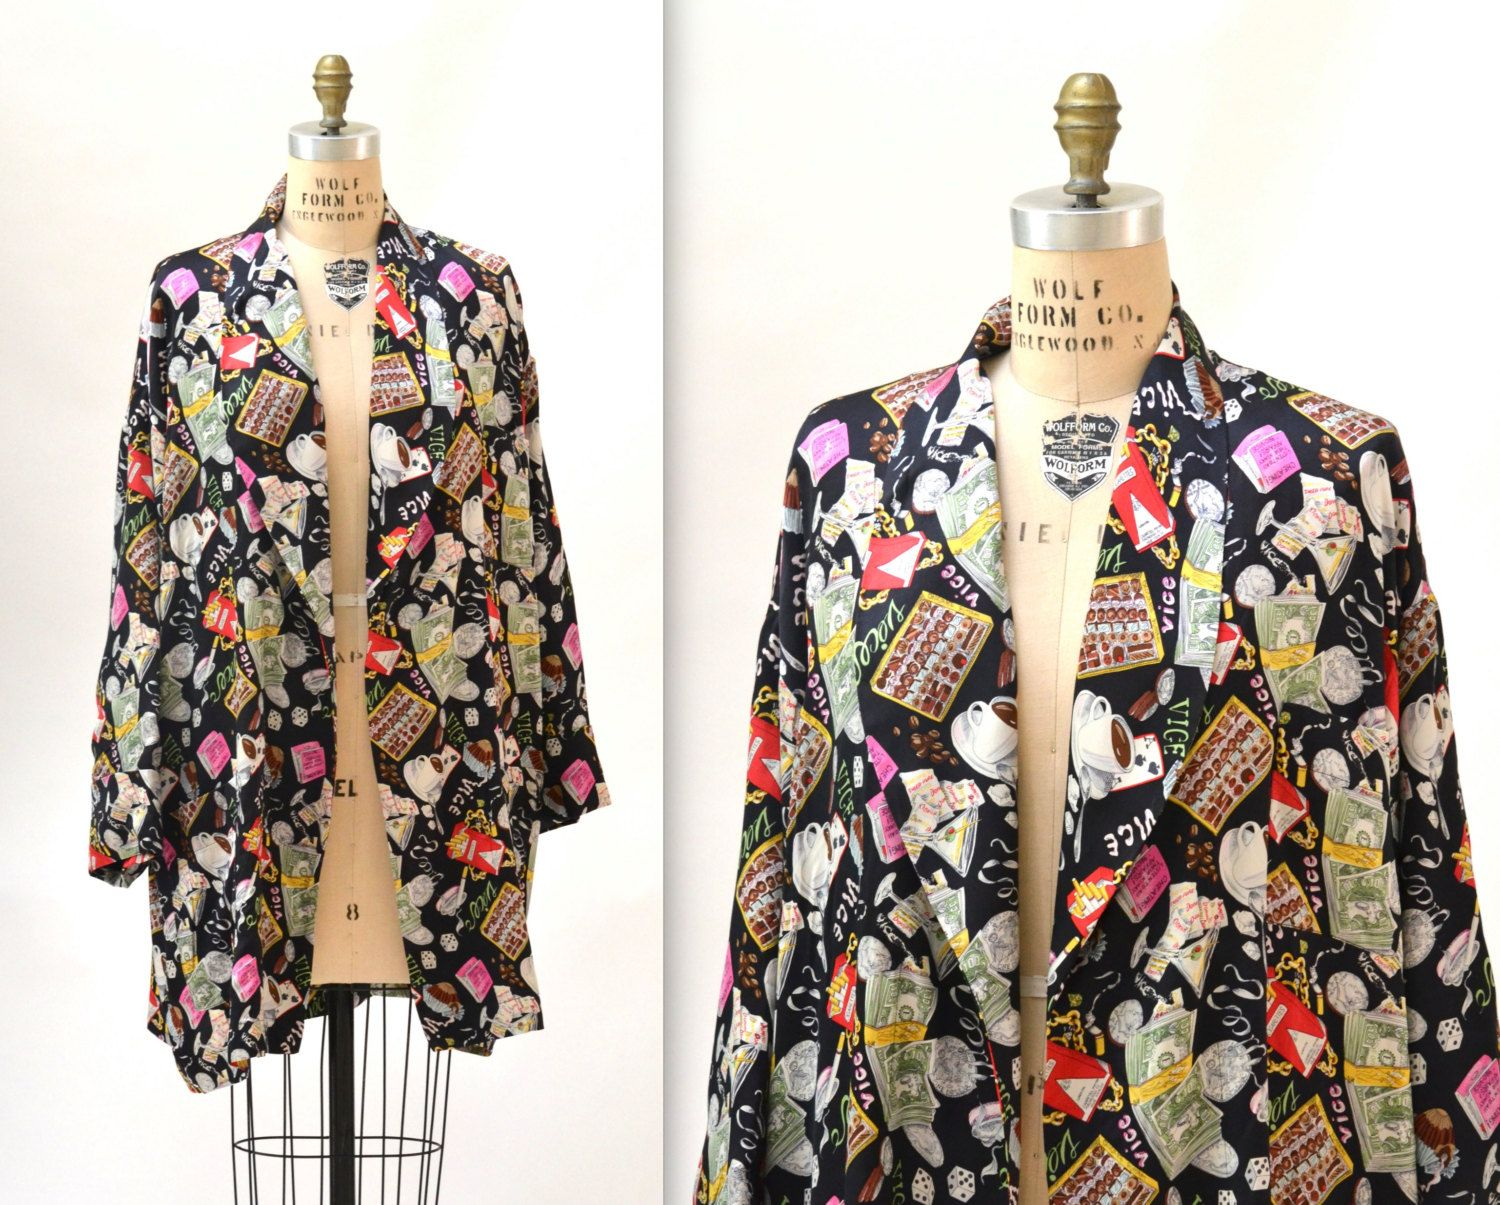 80f896249c4d77 90s Vintage Nicole Miller Silk Shirt Mens Silk Robe Size Medium Large with  Vices Smoking